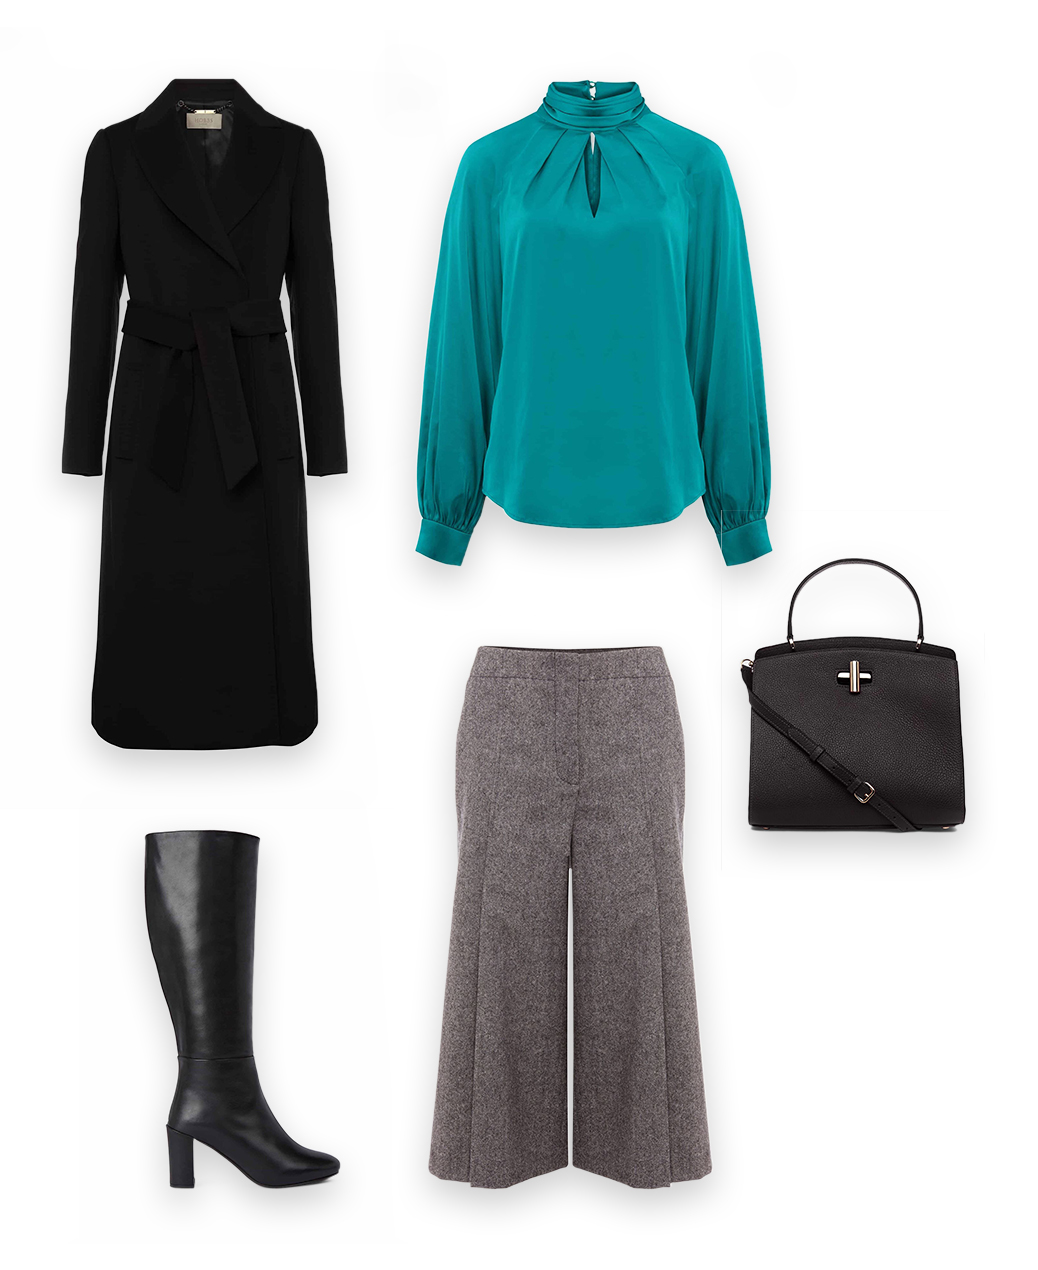 Collage of a green satin blouse, black coat, grey culottes, black long boots and a black bag that together create an outfit.